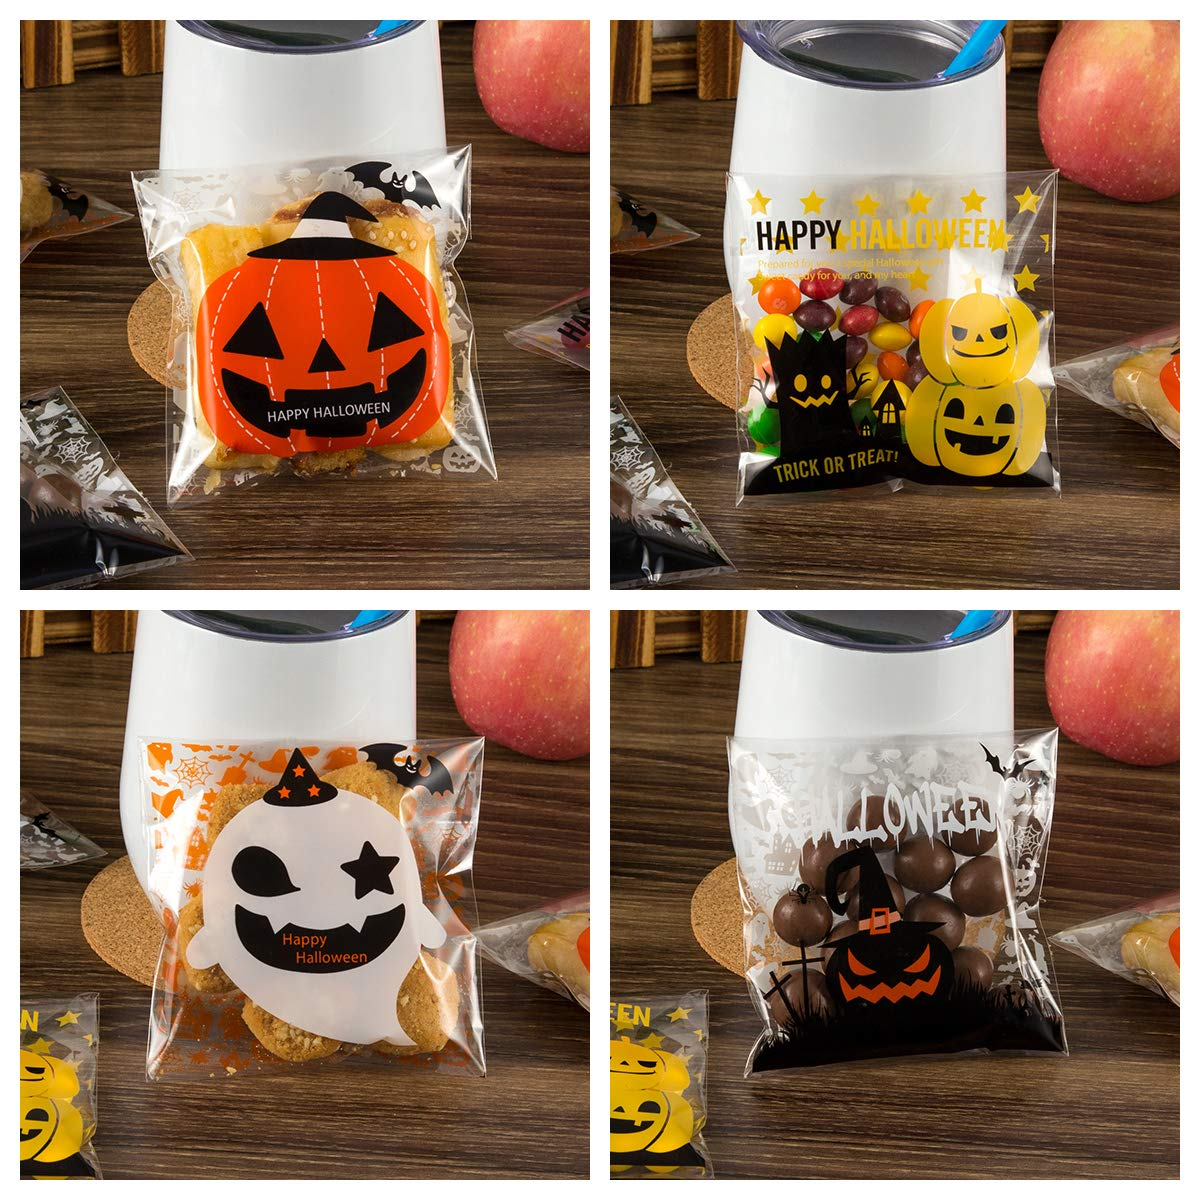 400PCS Halloween Self Adhesive Candy Bags Clear Cellophane Bags 4 Different Style Trick or Treat Bag for Cookie Bakery Biscuit Snacks Dessert Homemade Crafts by Homfshop (Image #4)